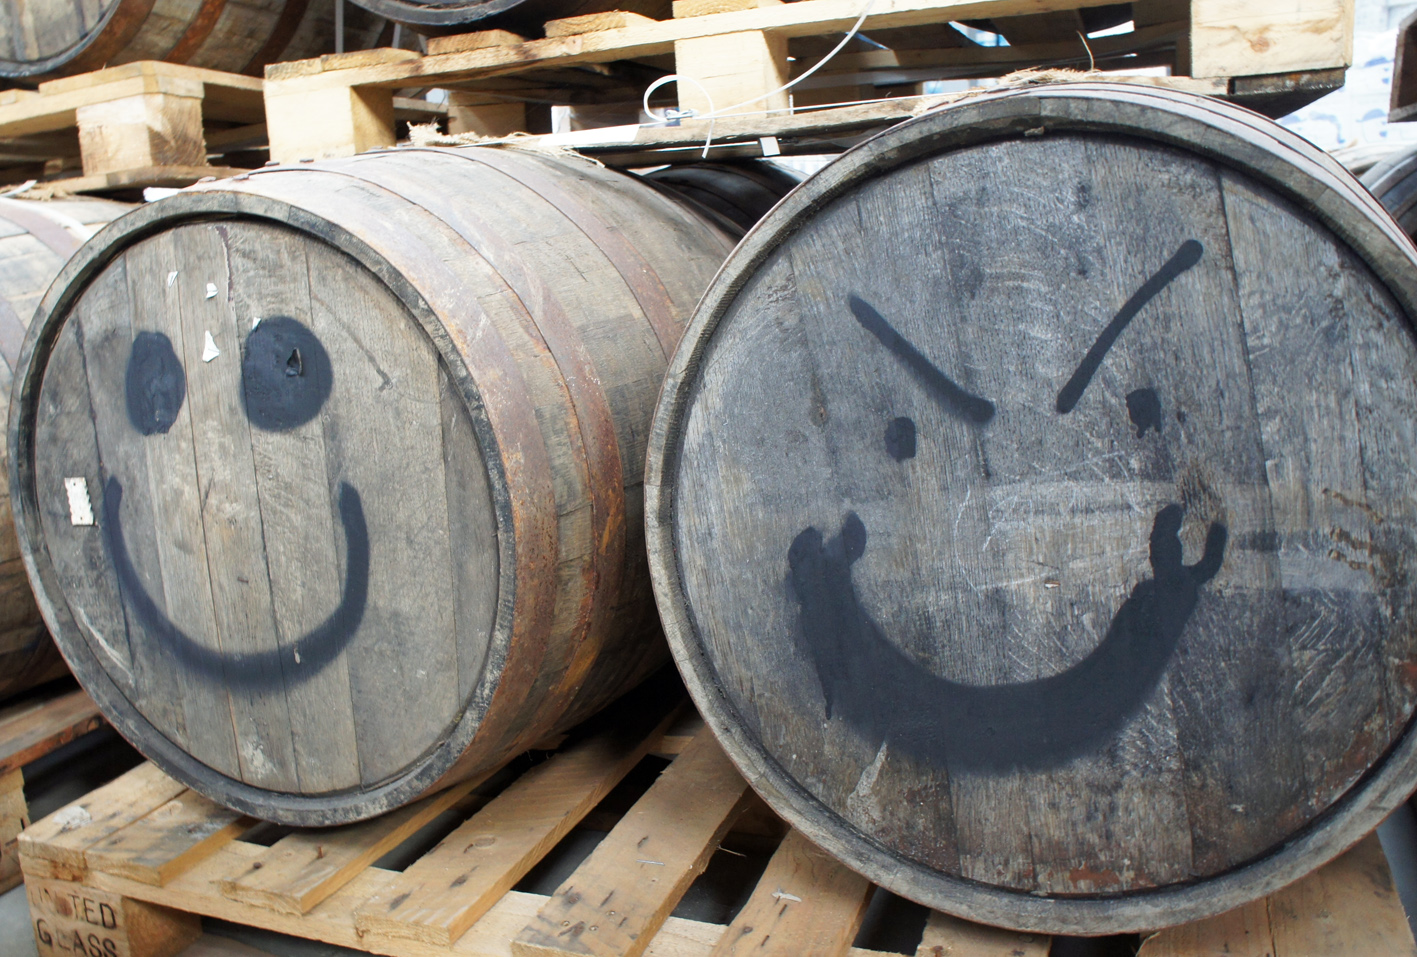 Two of dozens, at least, of former whisky, bourbon and rum casks at the brewery, filled with maturing beer